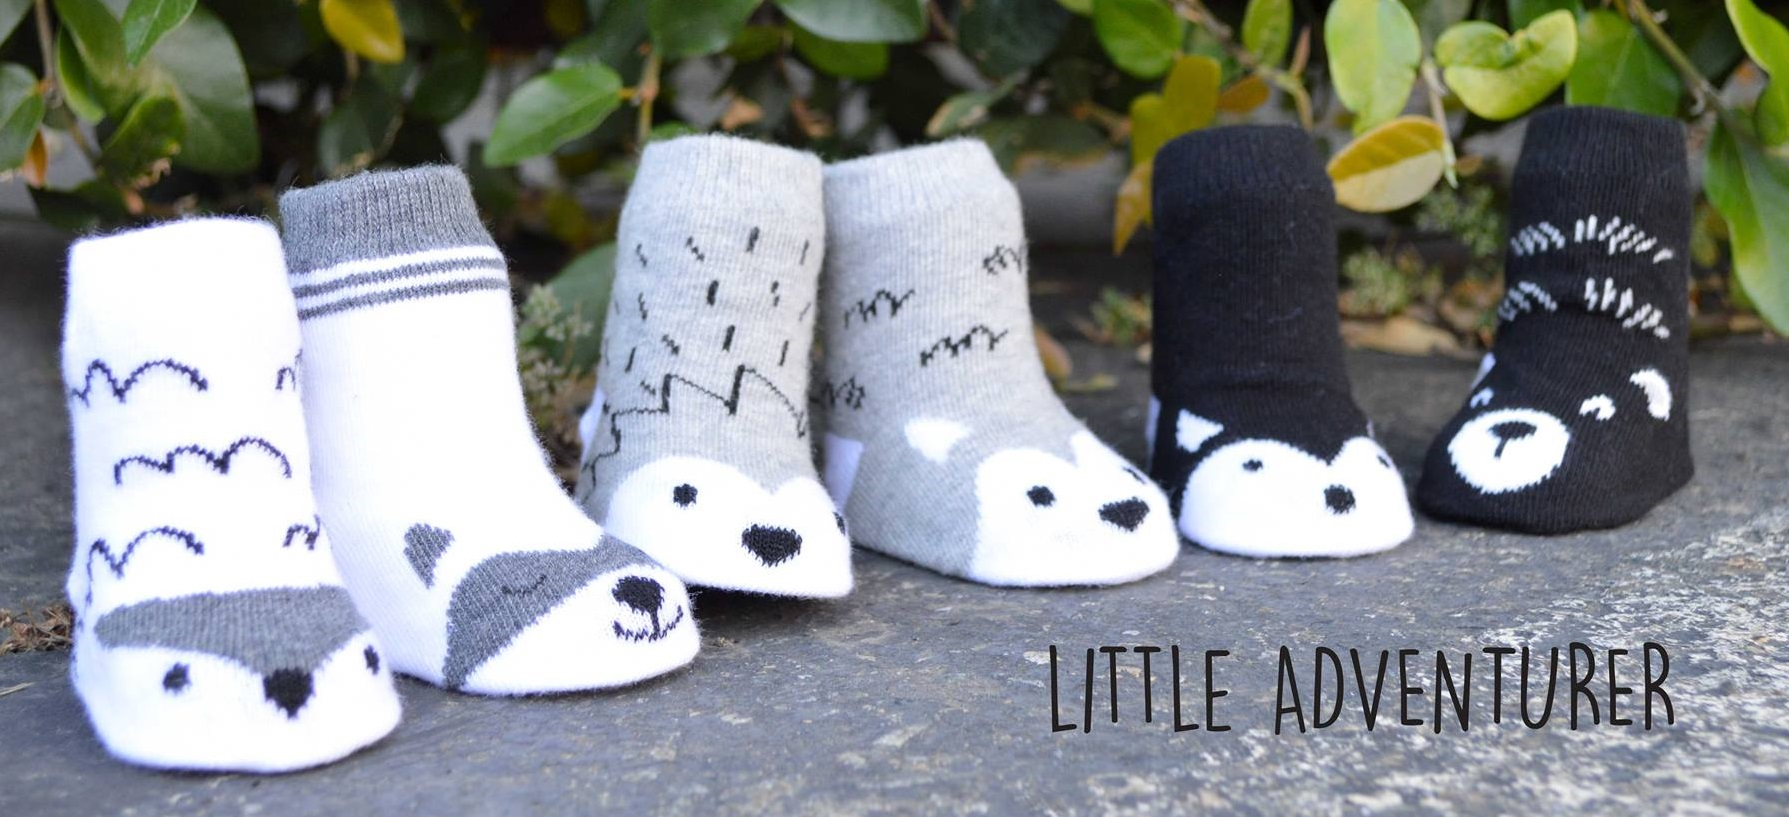 trumpette-baby-socks-little-adventurer